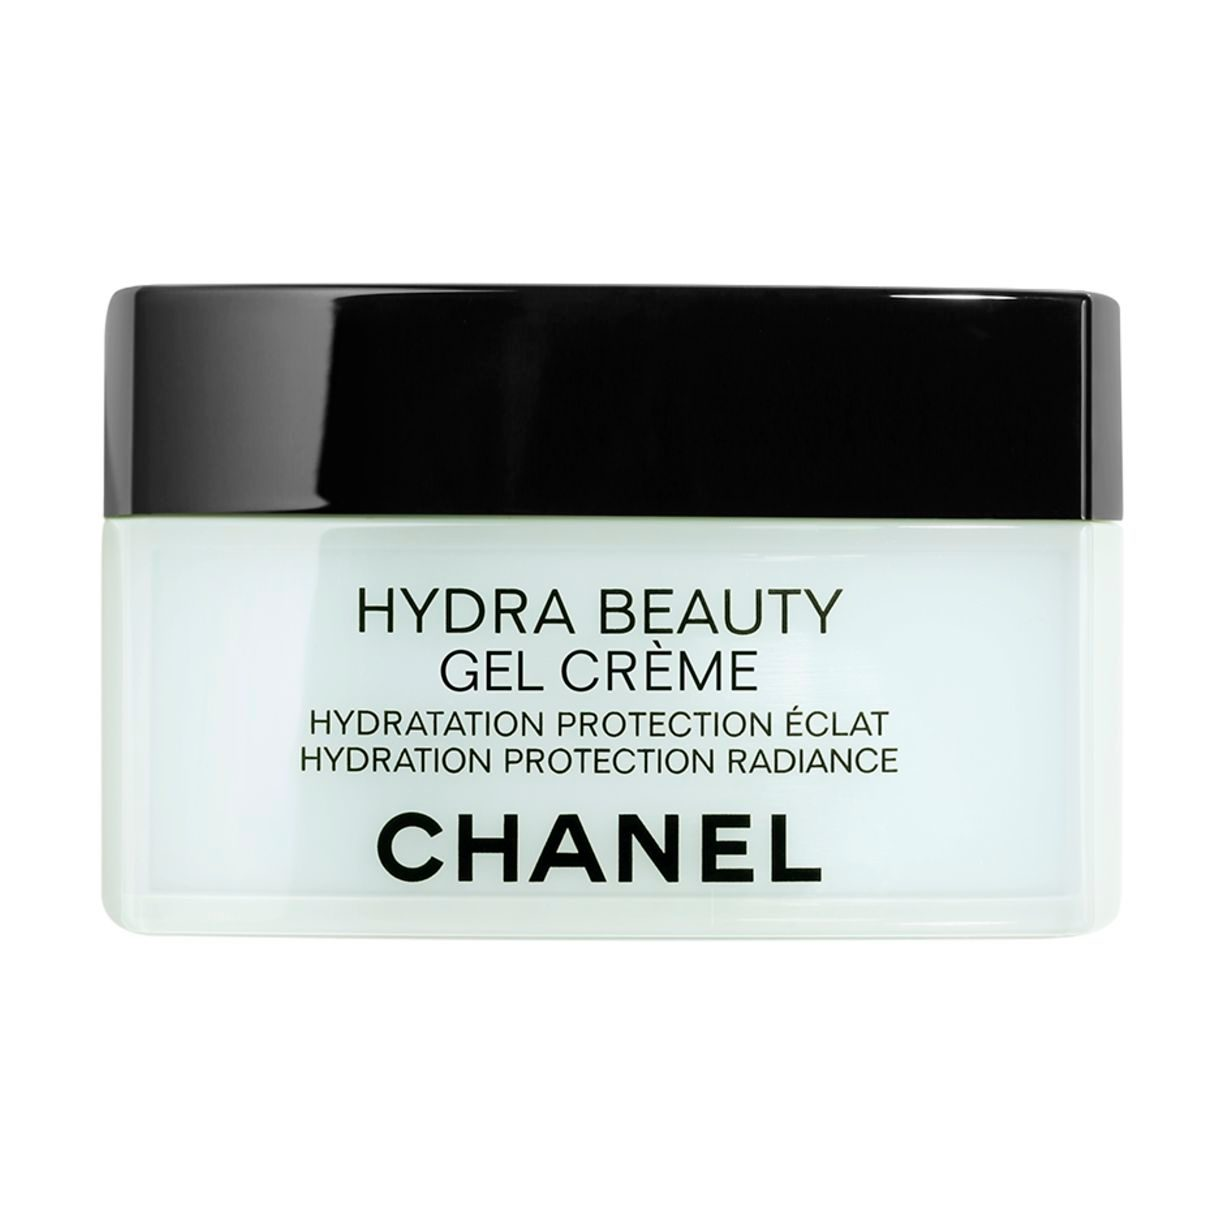 HYDRA BEAUTY GEL CRÈME HYDRATION PROTECTION RADIANCE JAR 50G